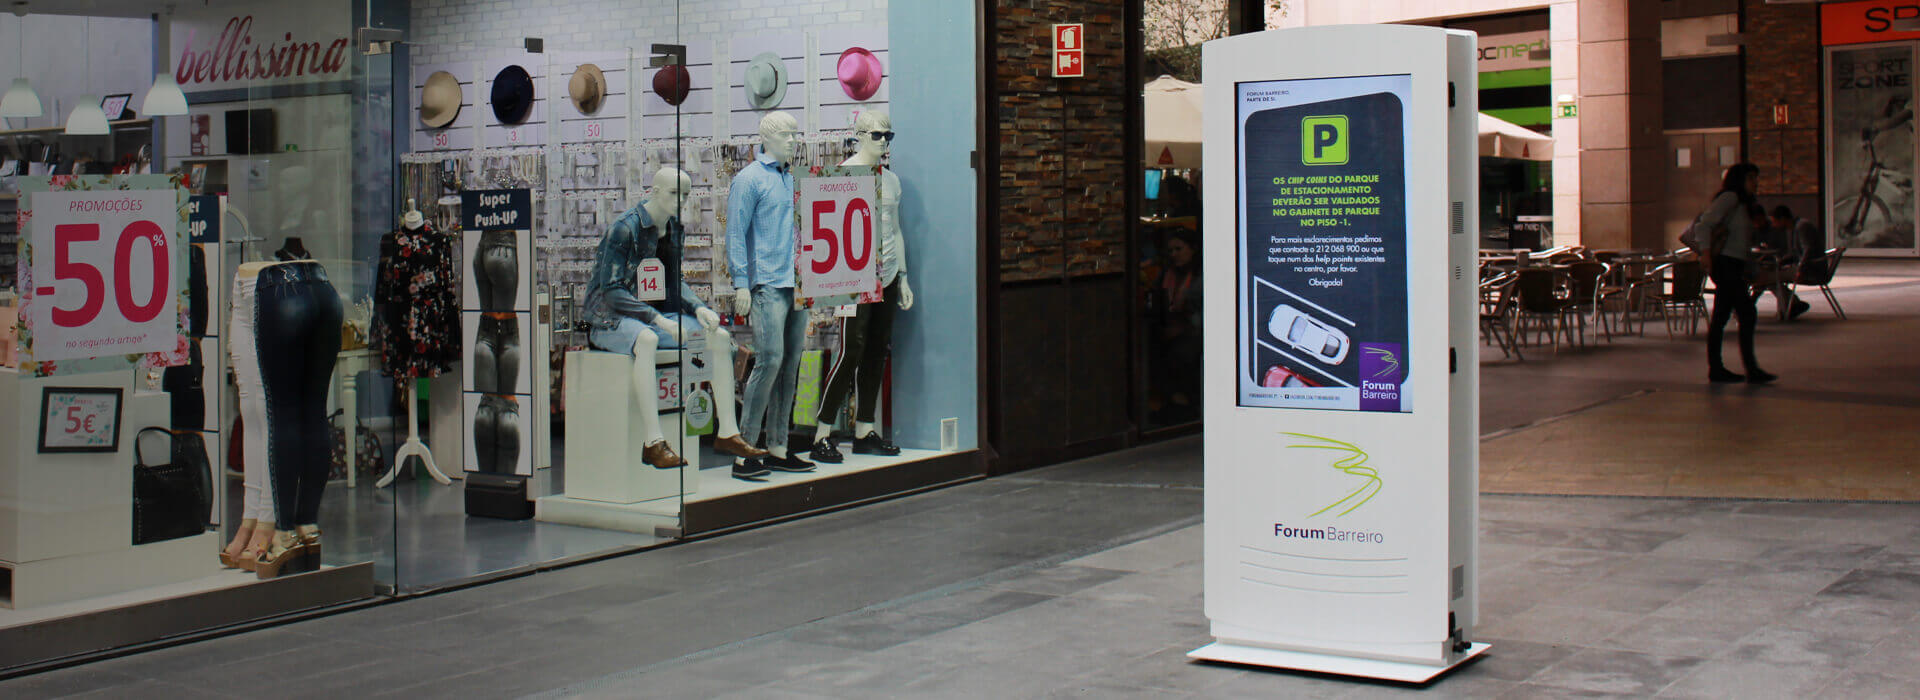 Digital Billboards for Shoppings Centers